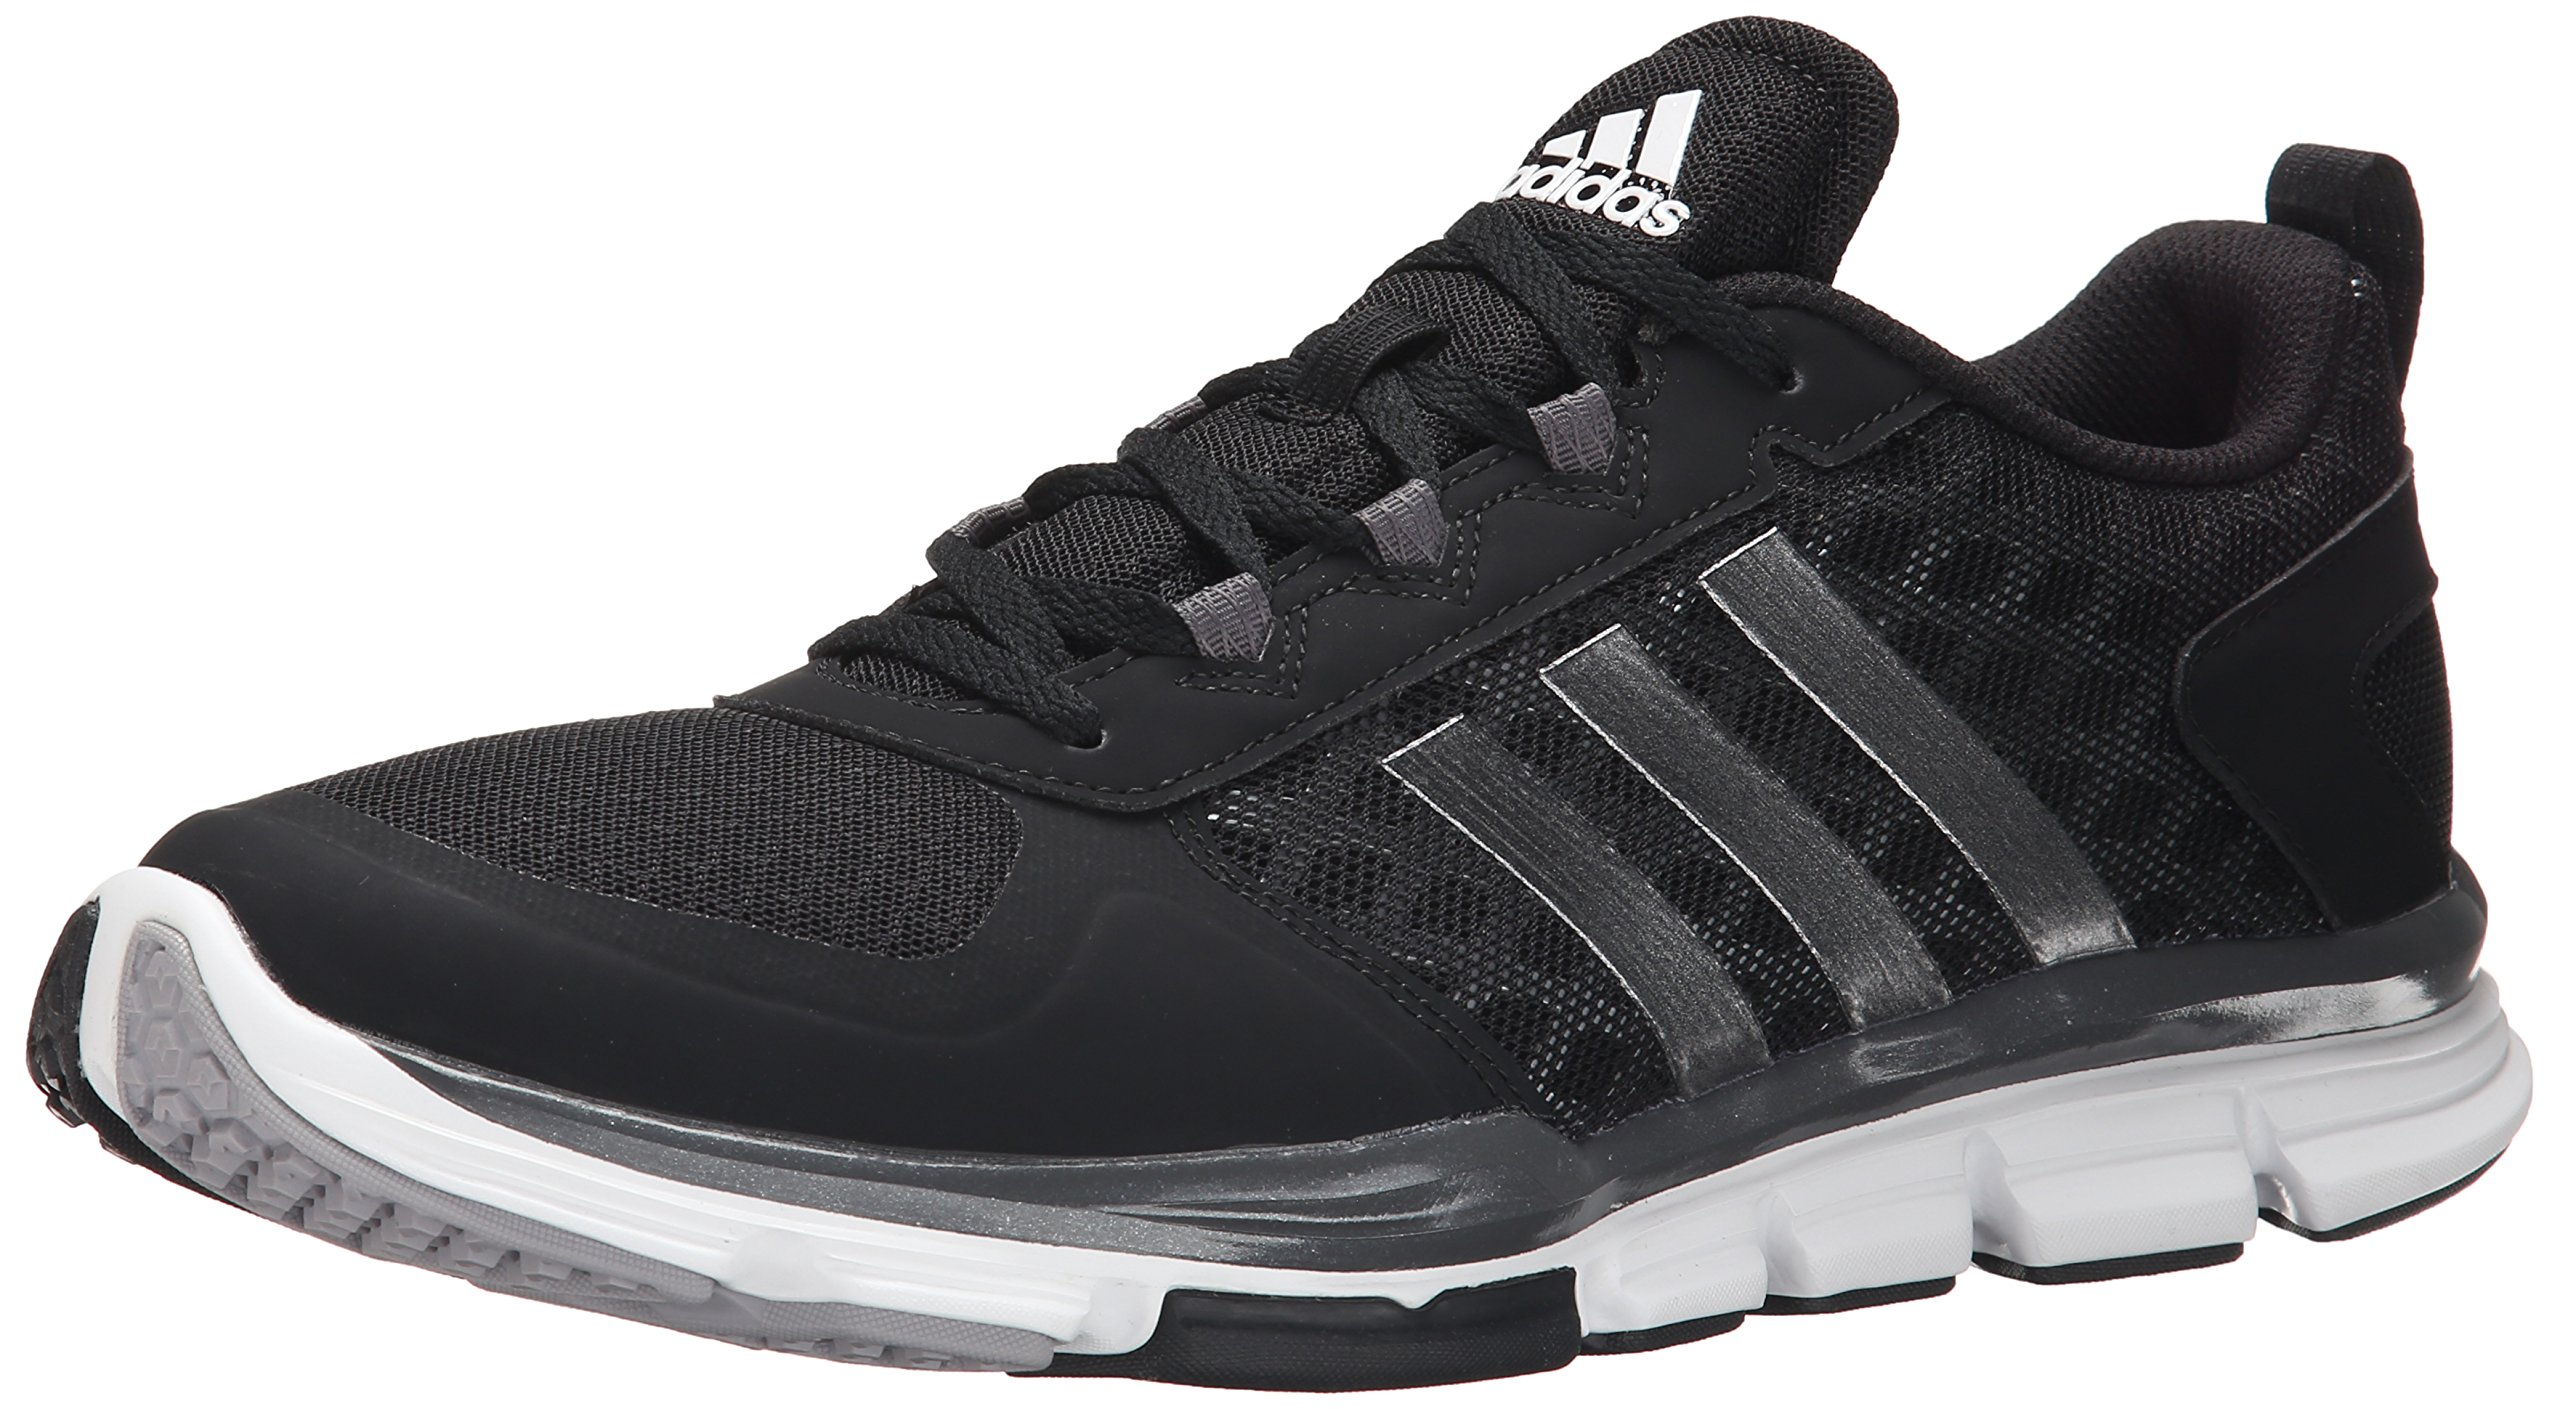 adidas Performance Men's Speed Trainer 2 Training Shoe, Black/White/Carbon Metallic, 12.5 M US